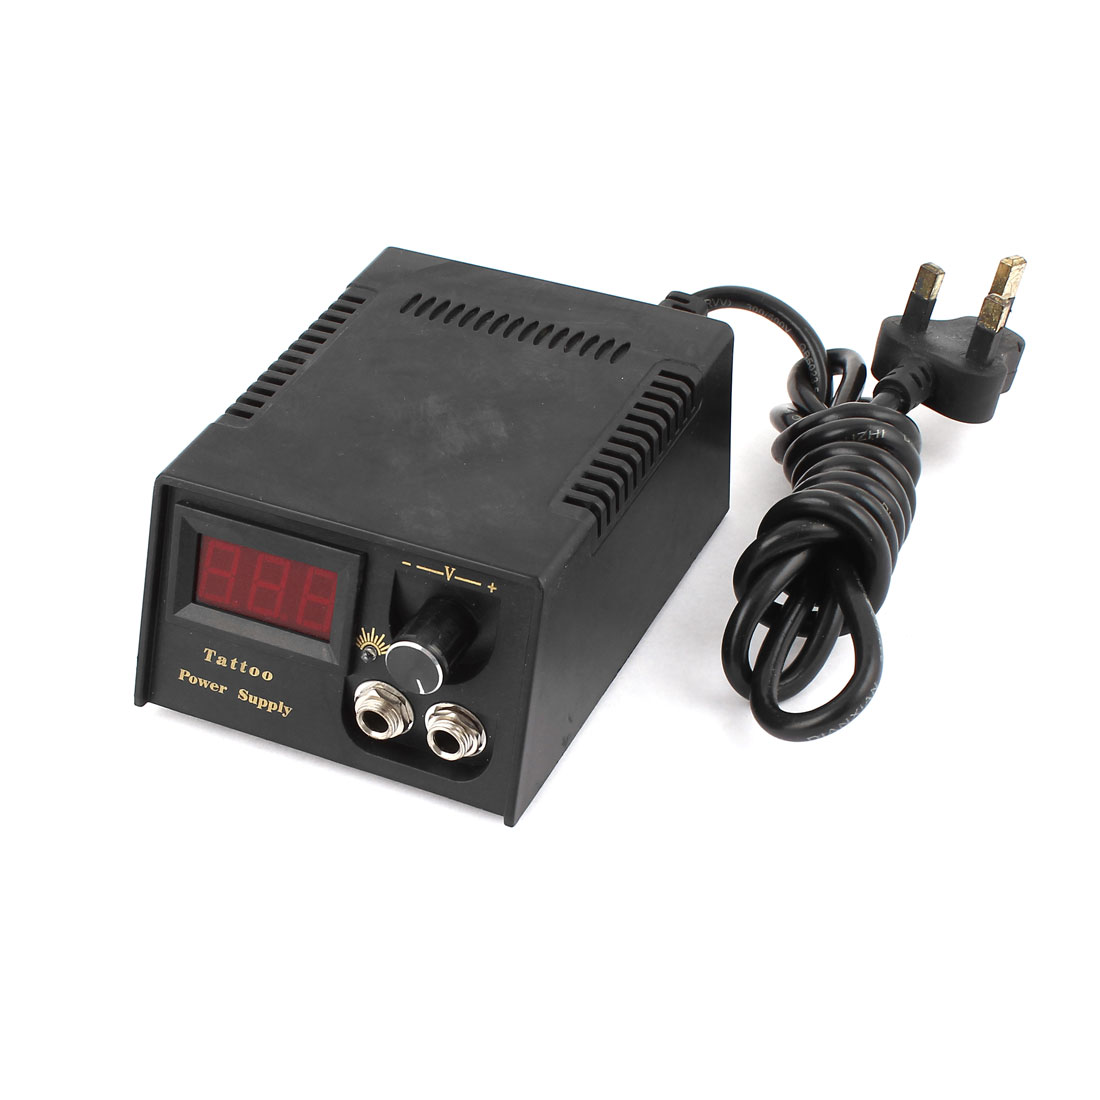 AC 110-220V to DC 1.5-18V UK Analog Tattoo Machine Power Supply